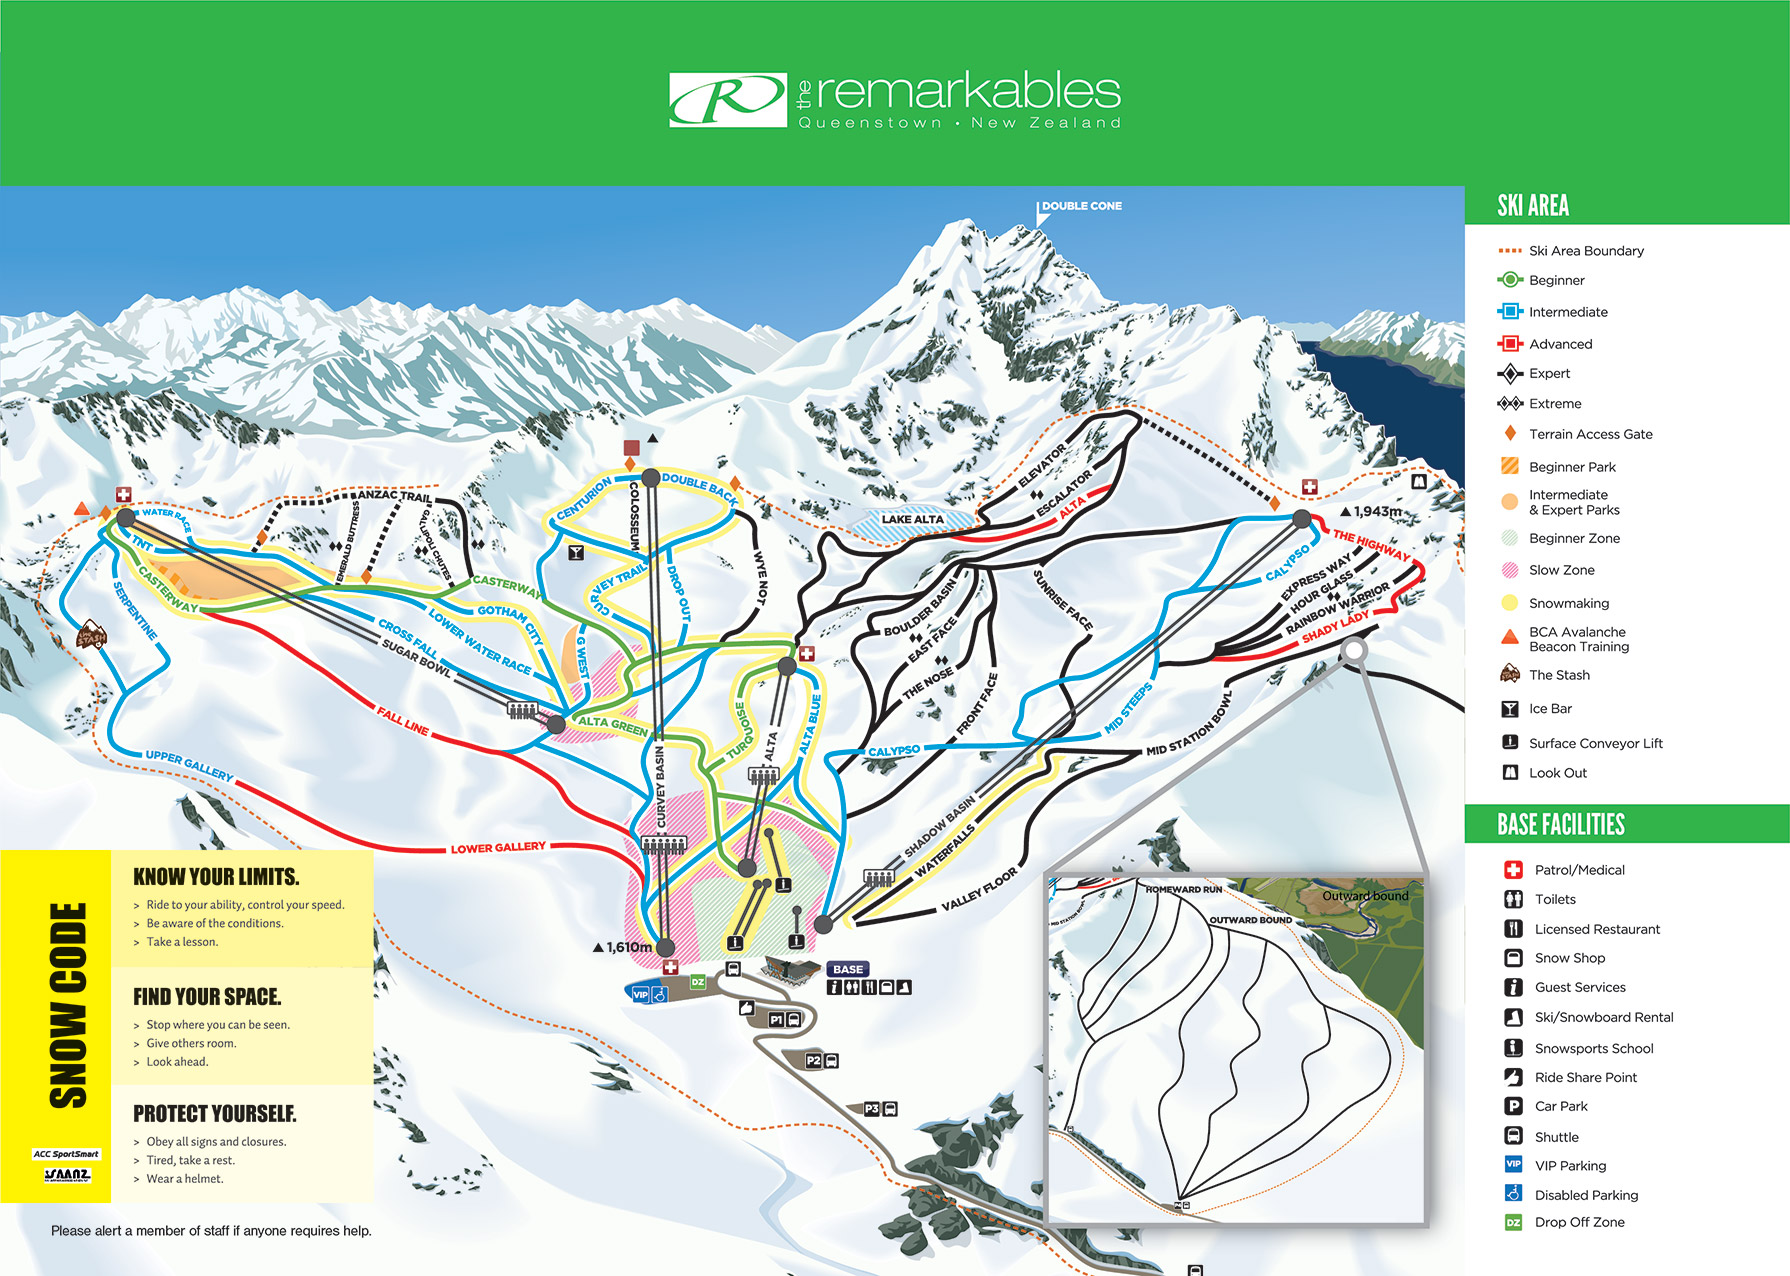 Remarkables Piste / Trail Map